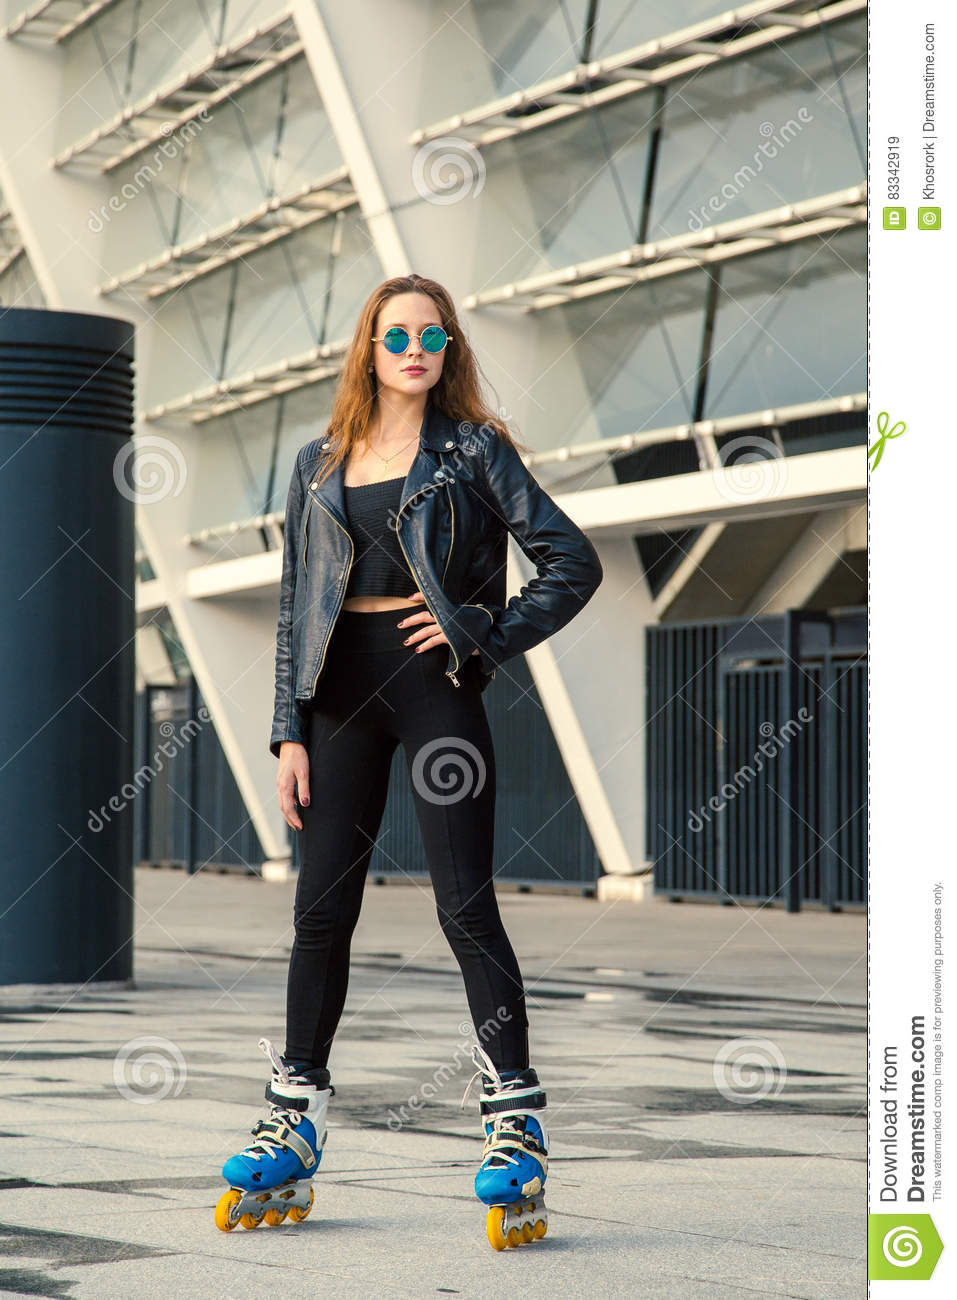 Girl on rollerblades standing in building background.